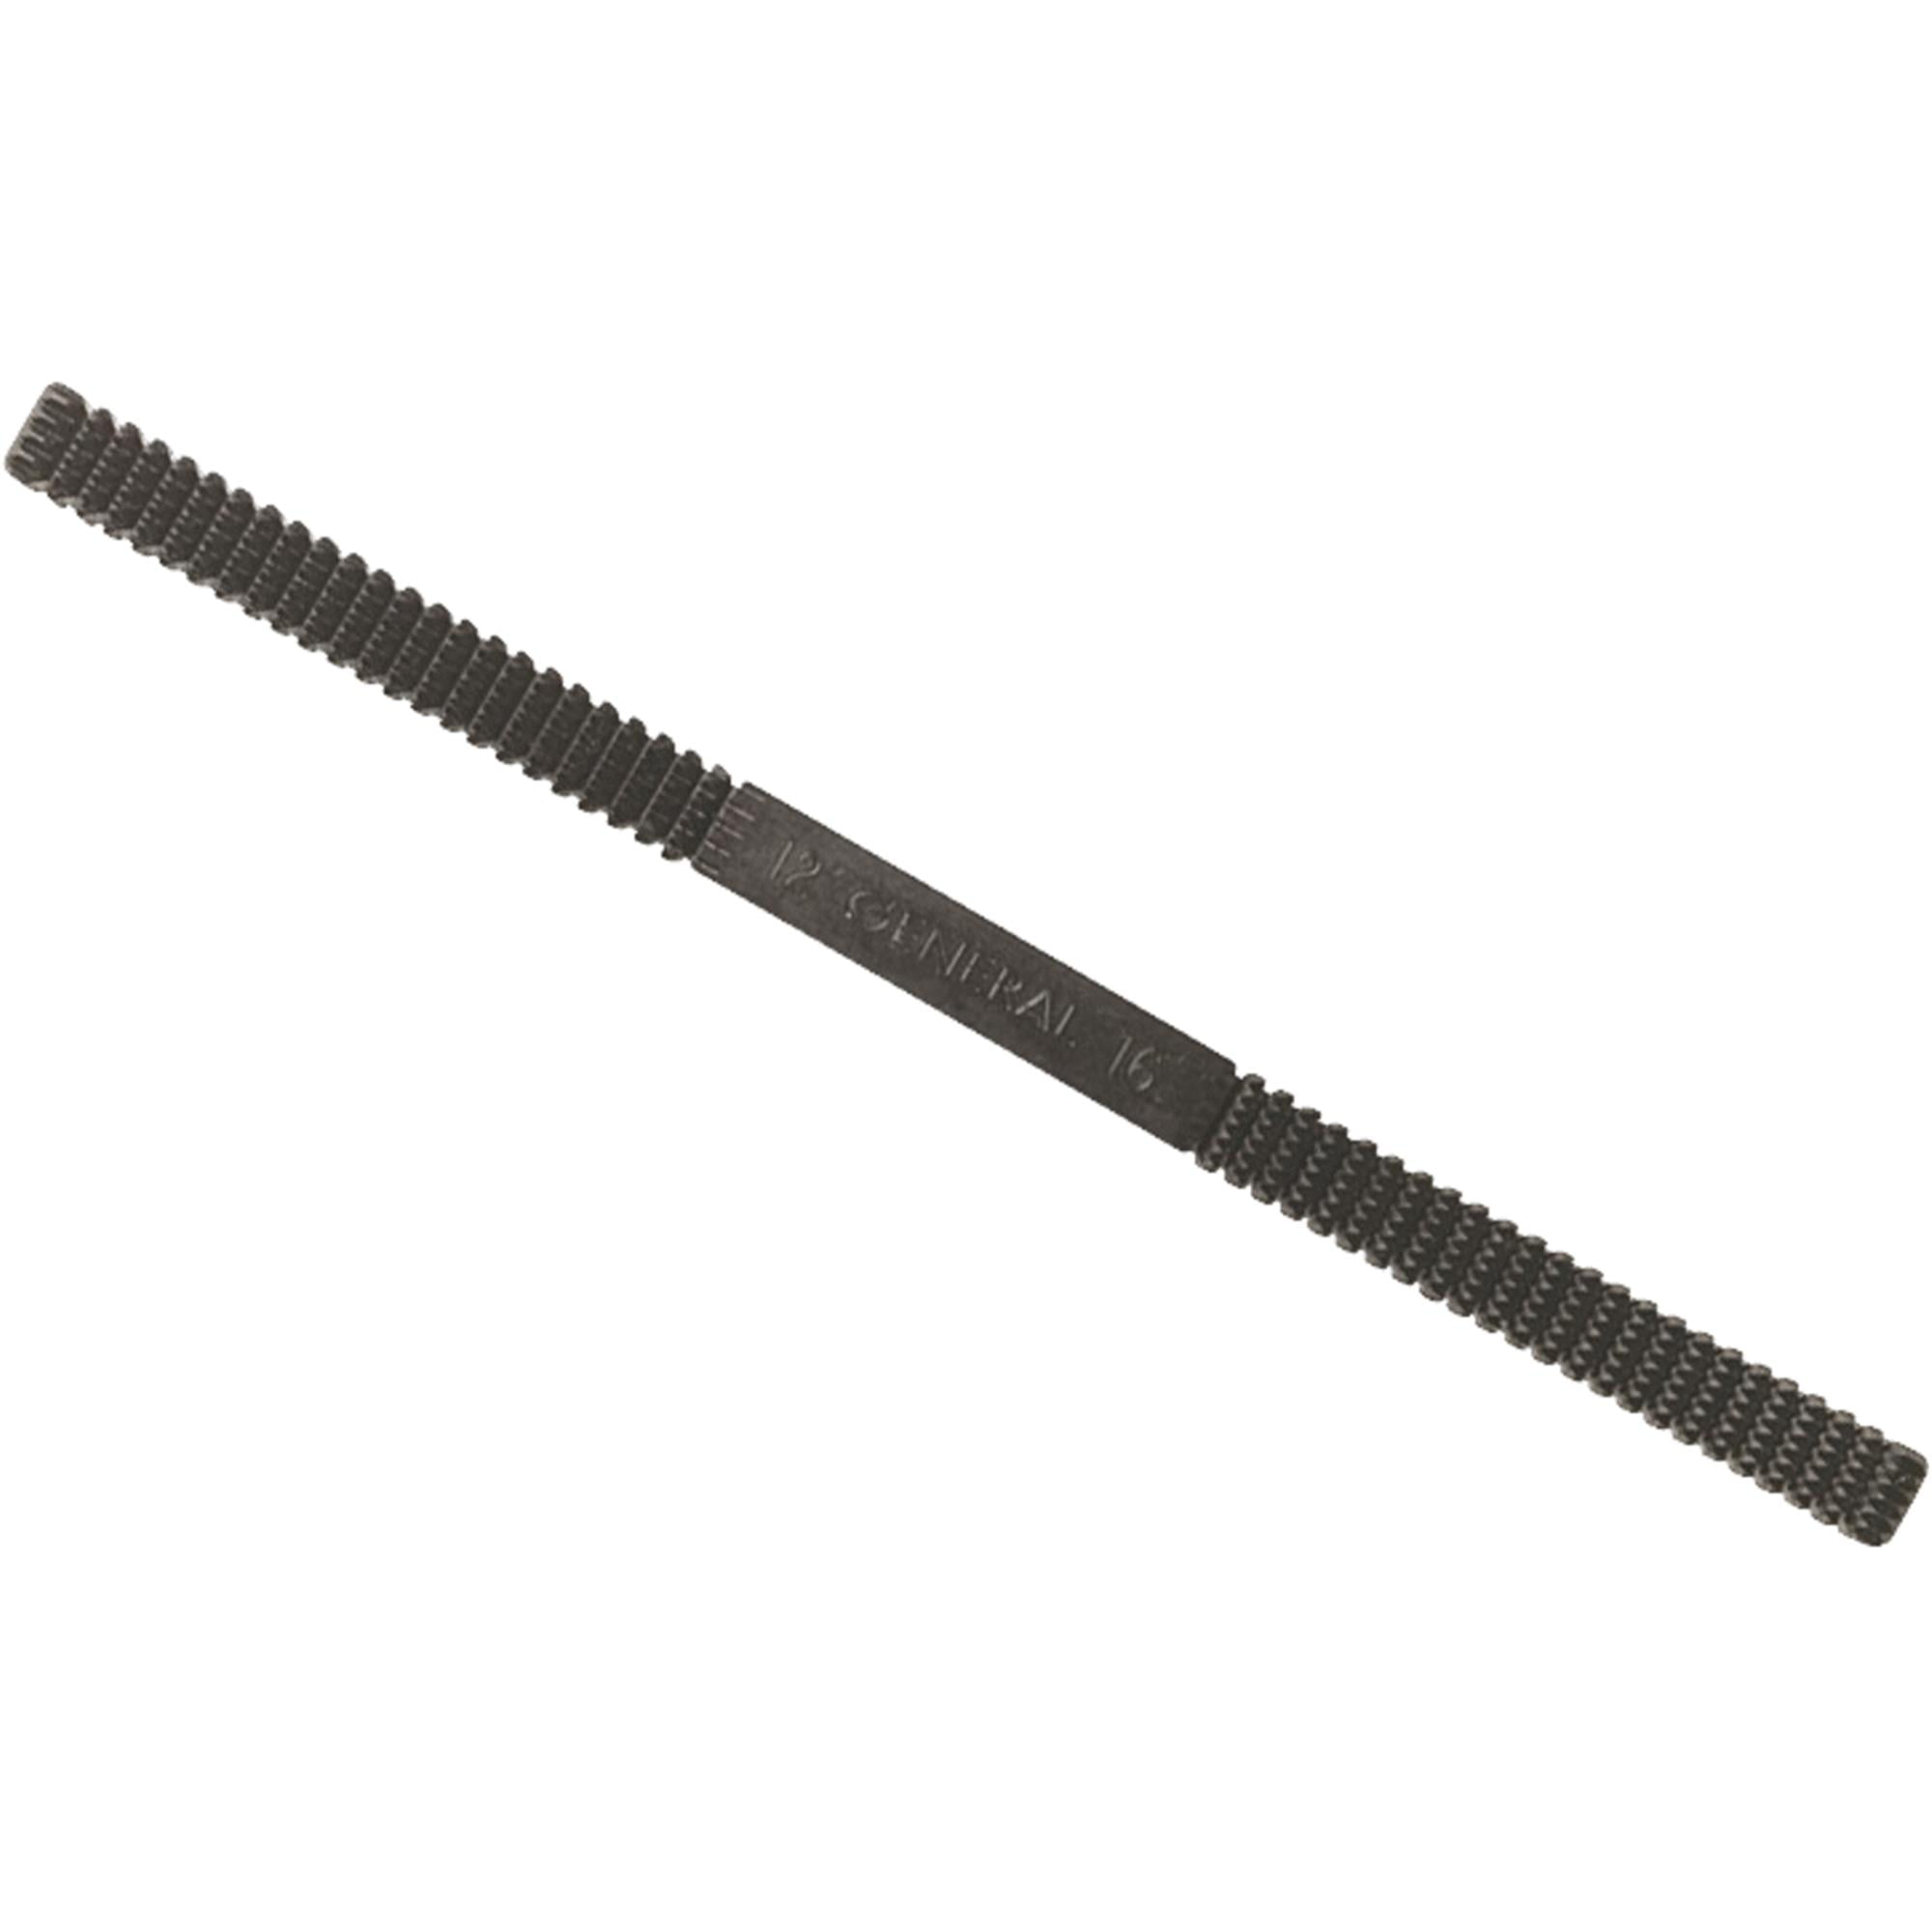 General Tools Thread Repair File by General Tools